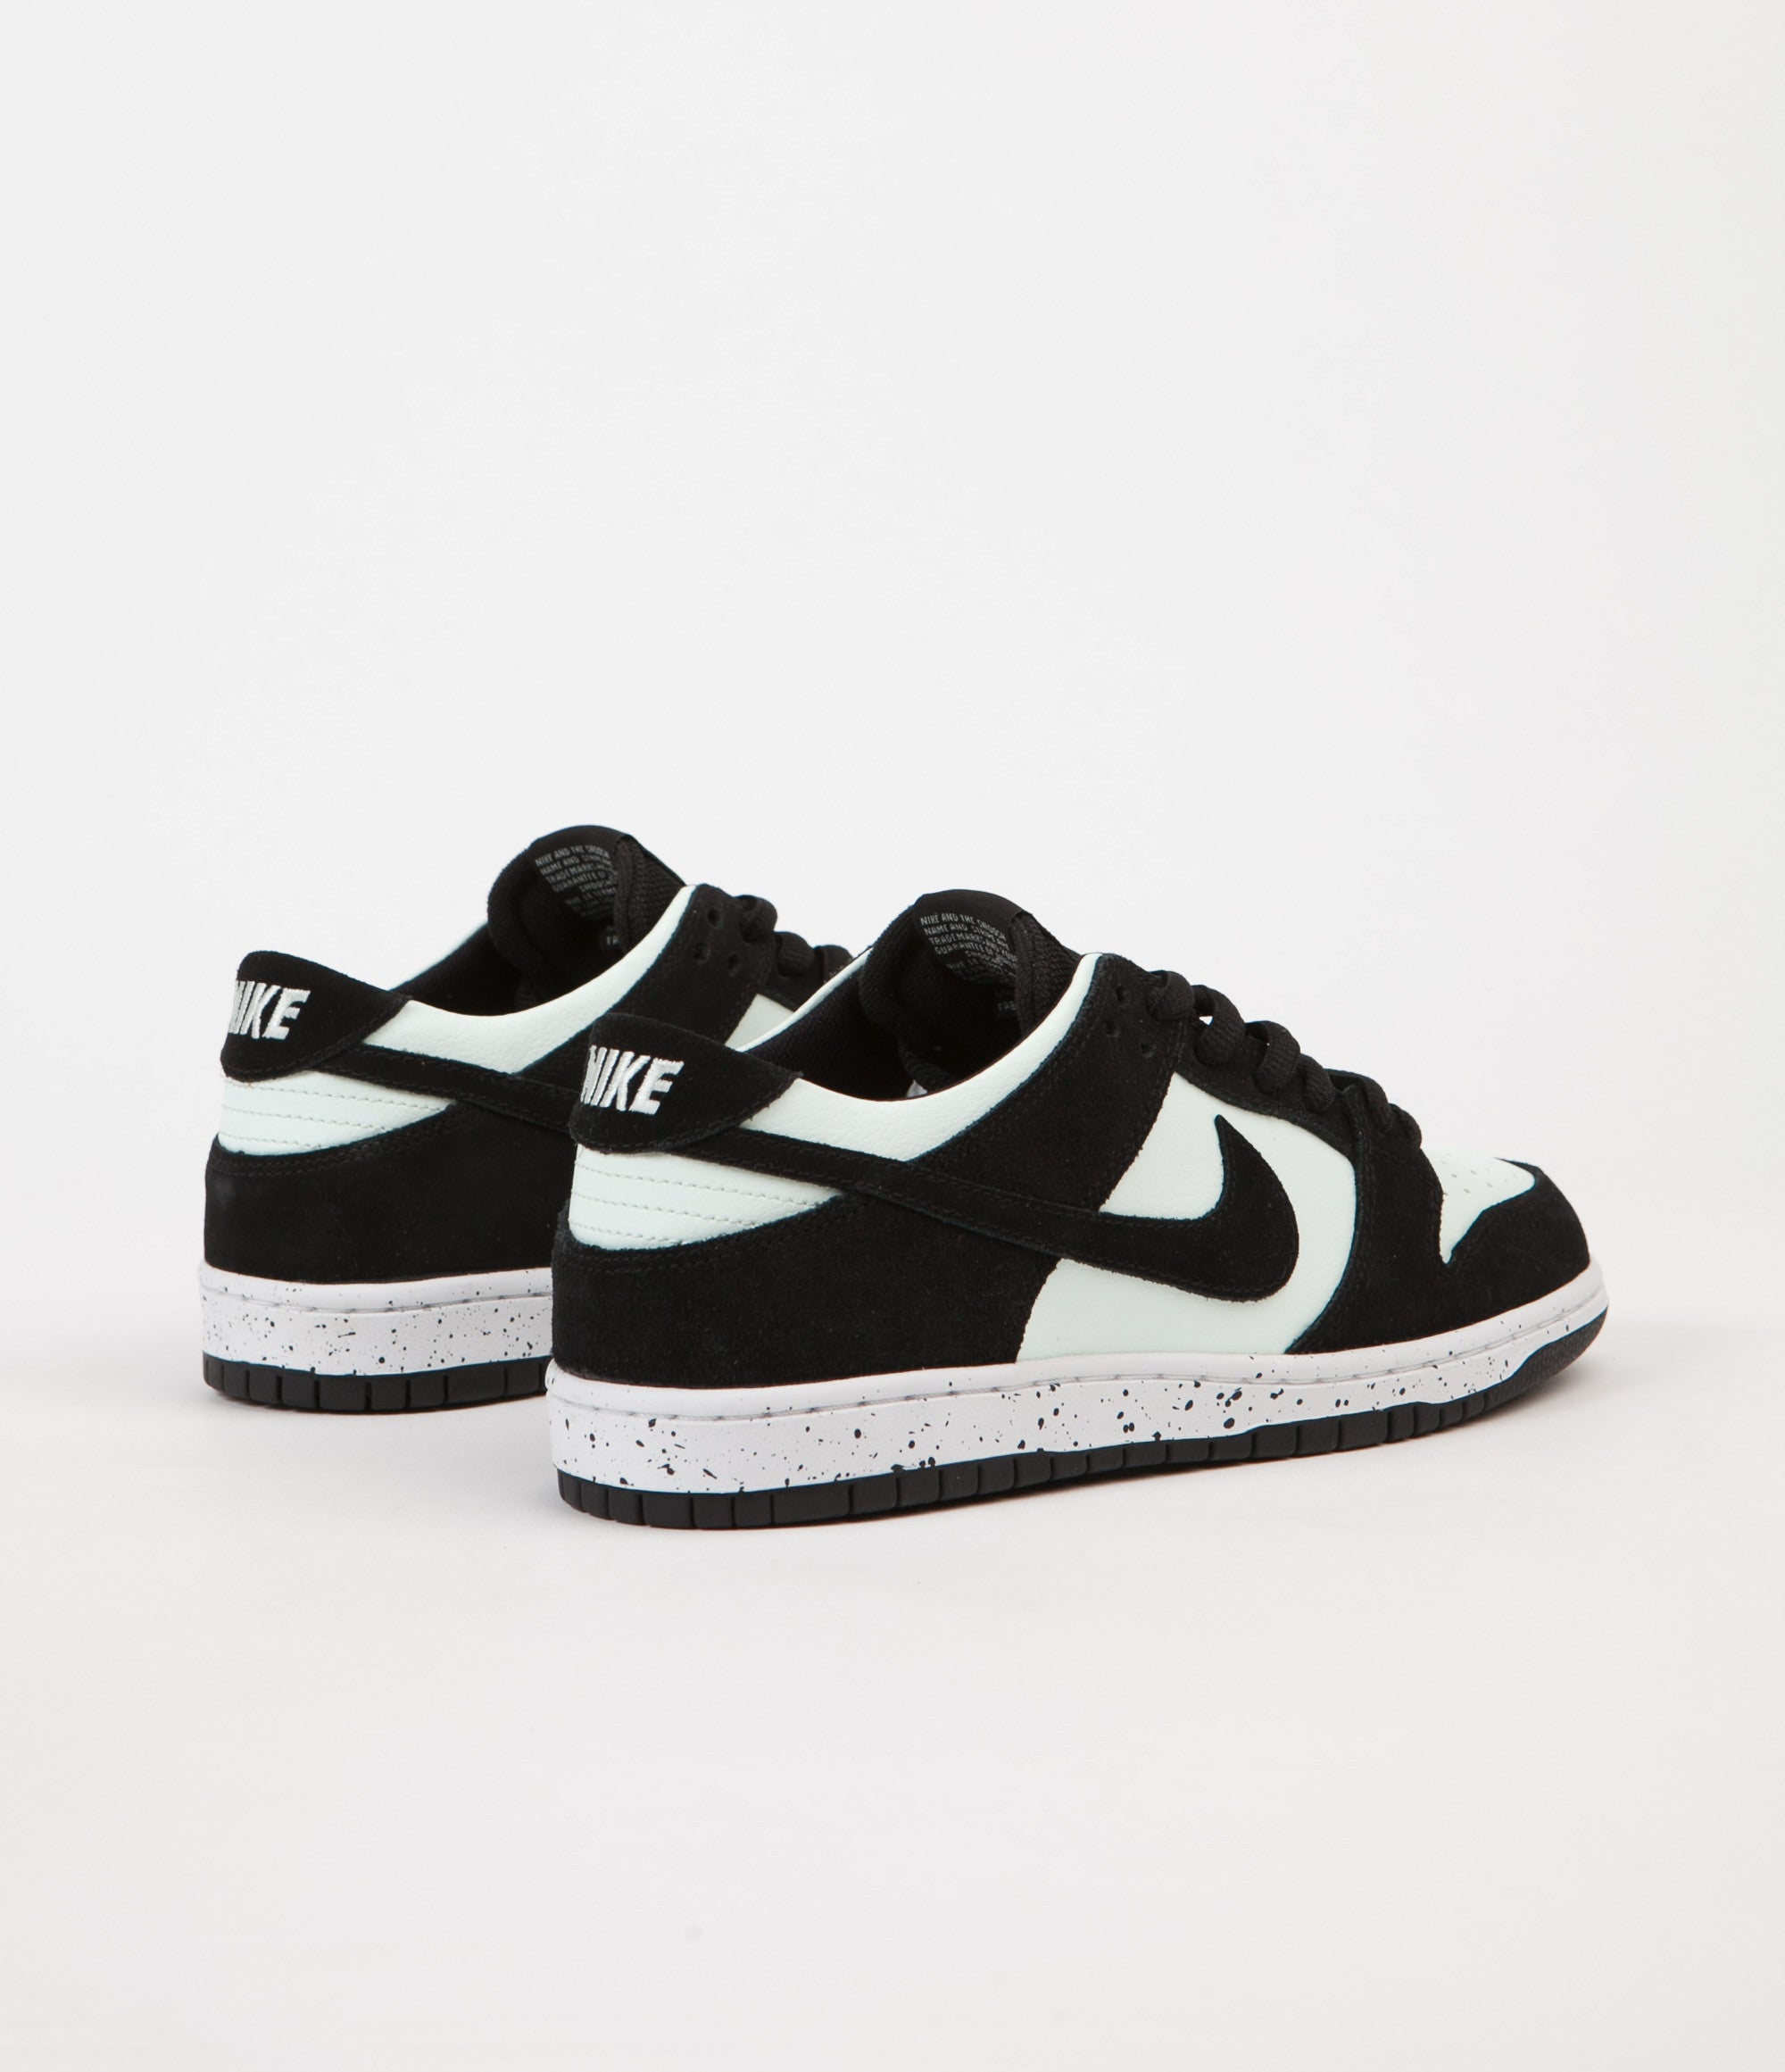 a324bb605e Nike SB Dunk Low Pro Shoes - Black / Black - Barely Green - White ...